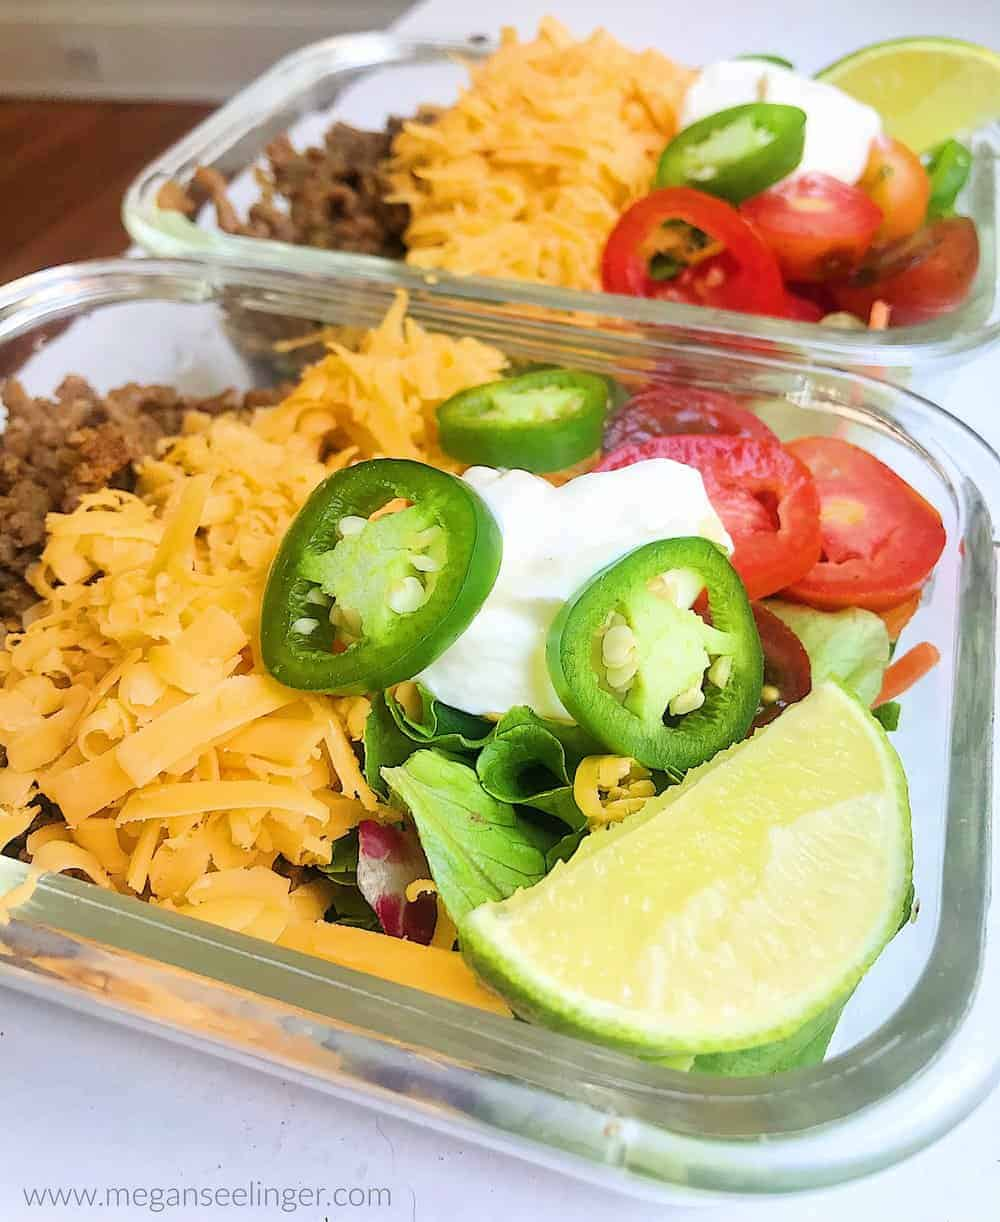 ground beef recipe meal prep container ready